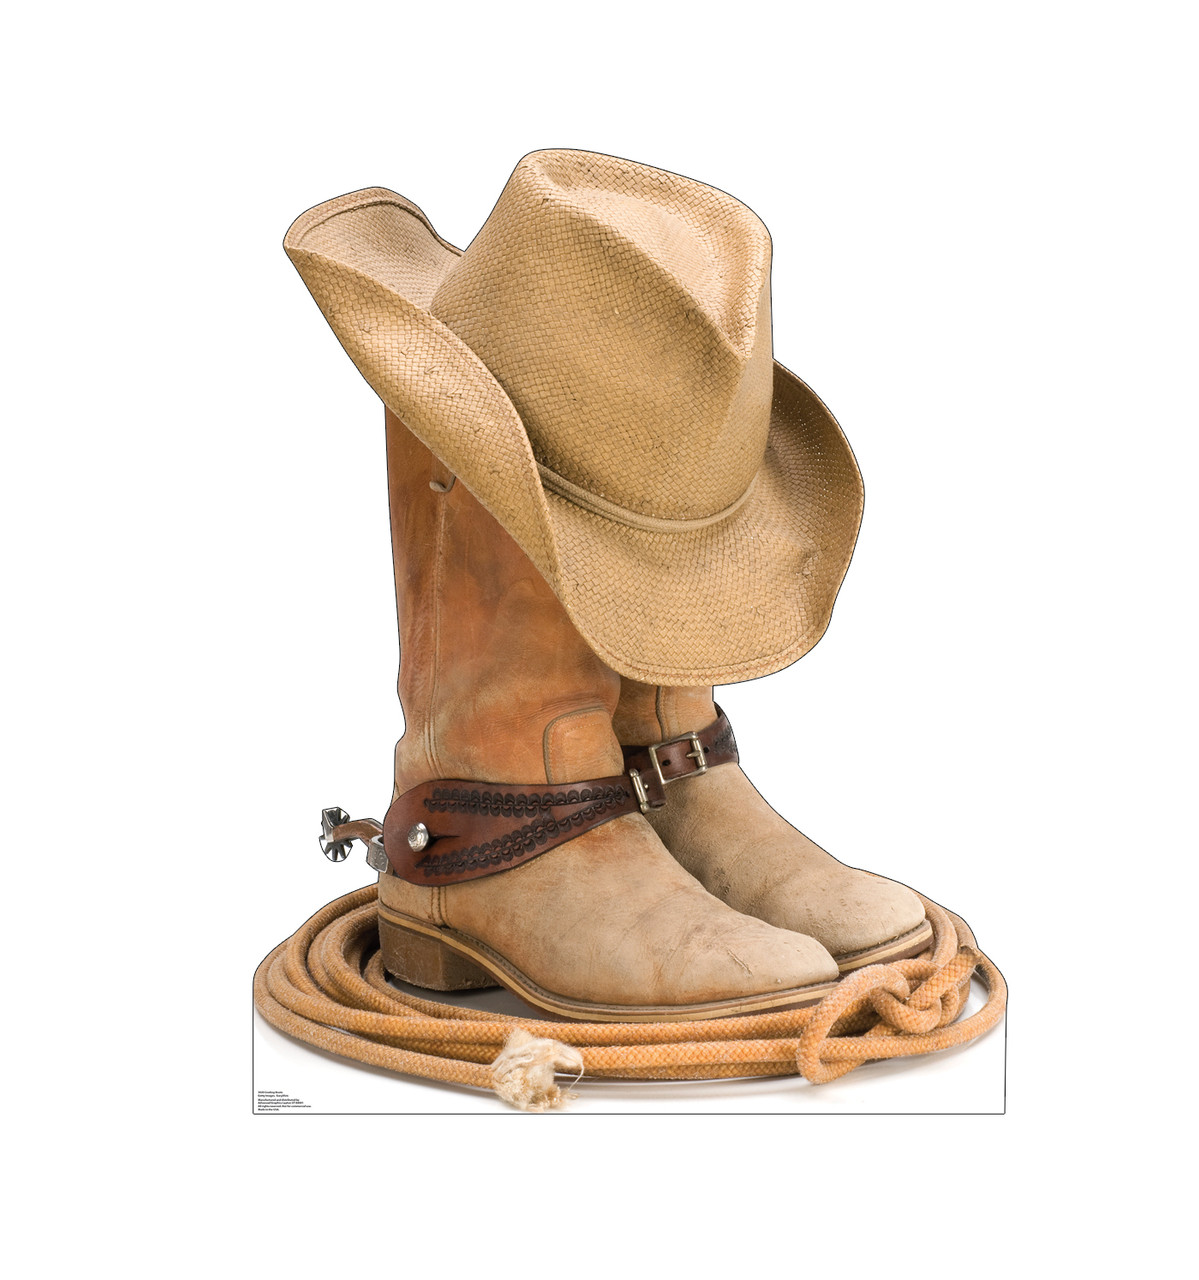 Life-size cardboard standee of Cowboy Boots Front View